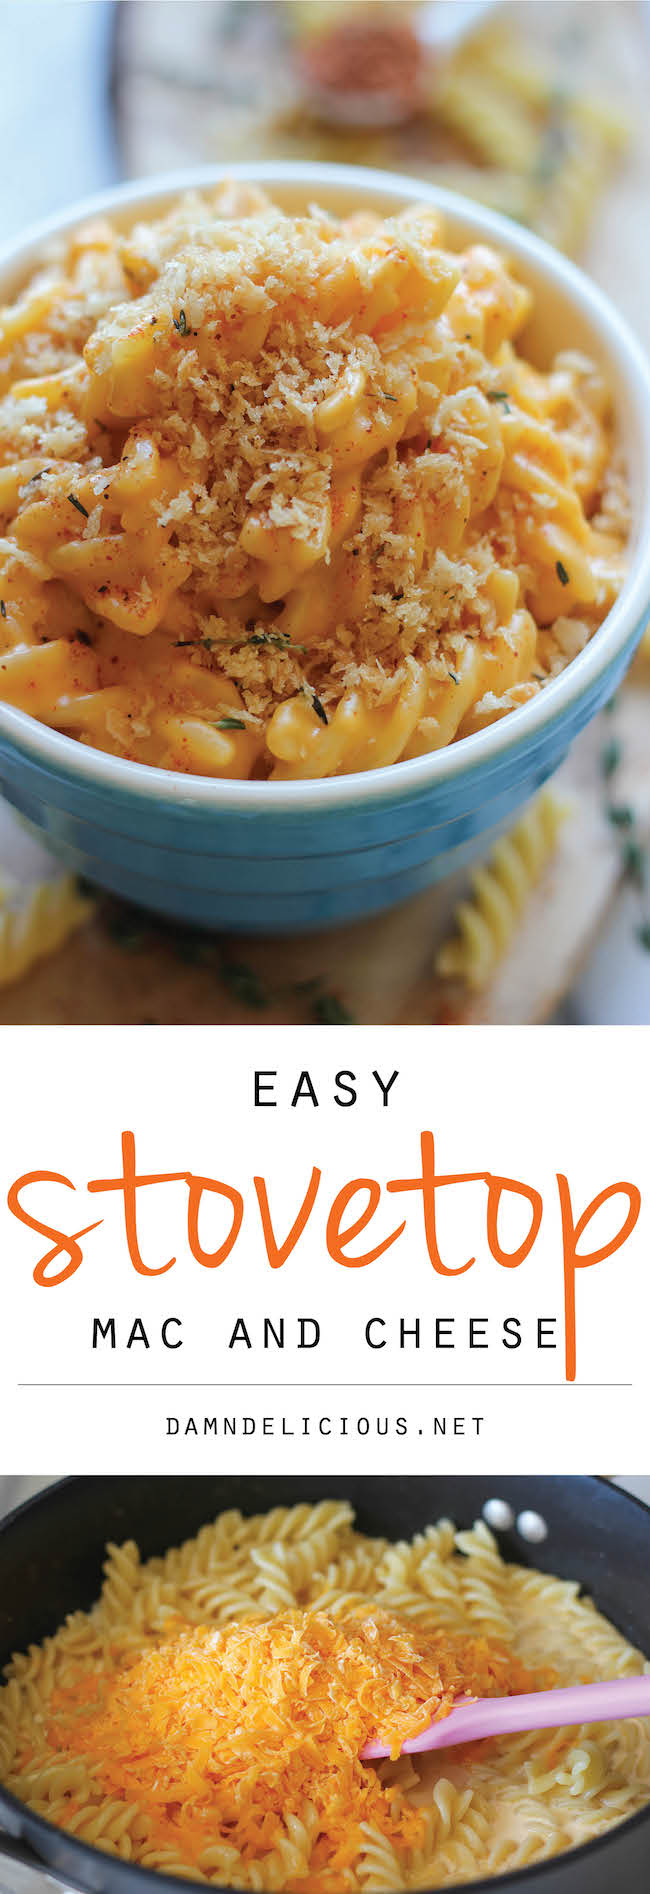 Stovetop Mac and Cheese - A quick and easy, no-fuss mac and cheese made in less than 30 min. Comfort food never tasted so good!